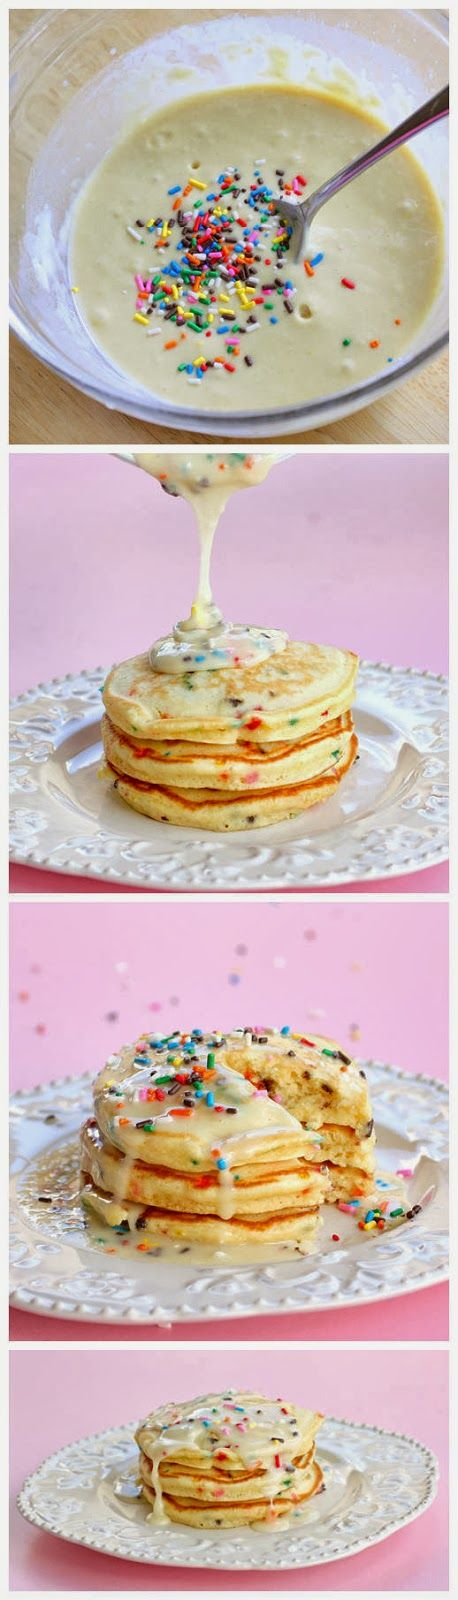 7 Best Images About Cake Batter On Pinterest Cake Batter Cake